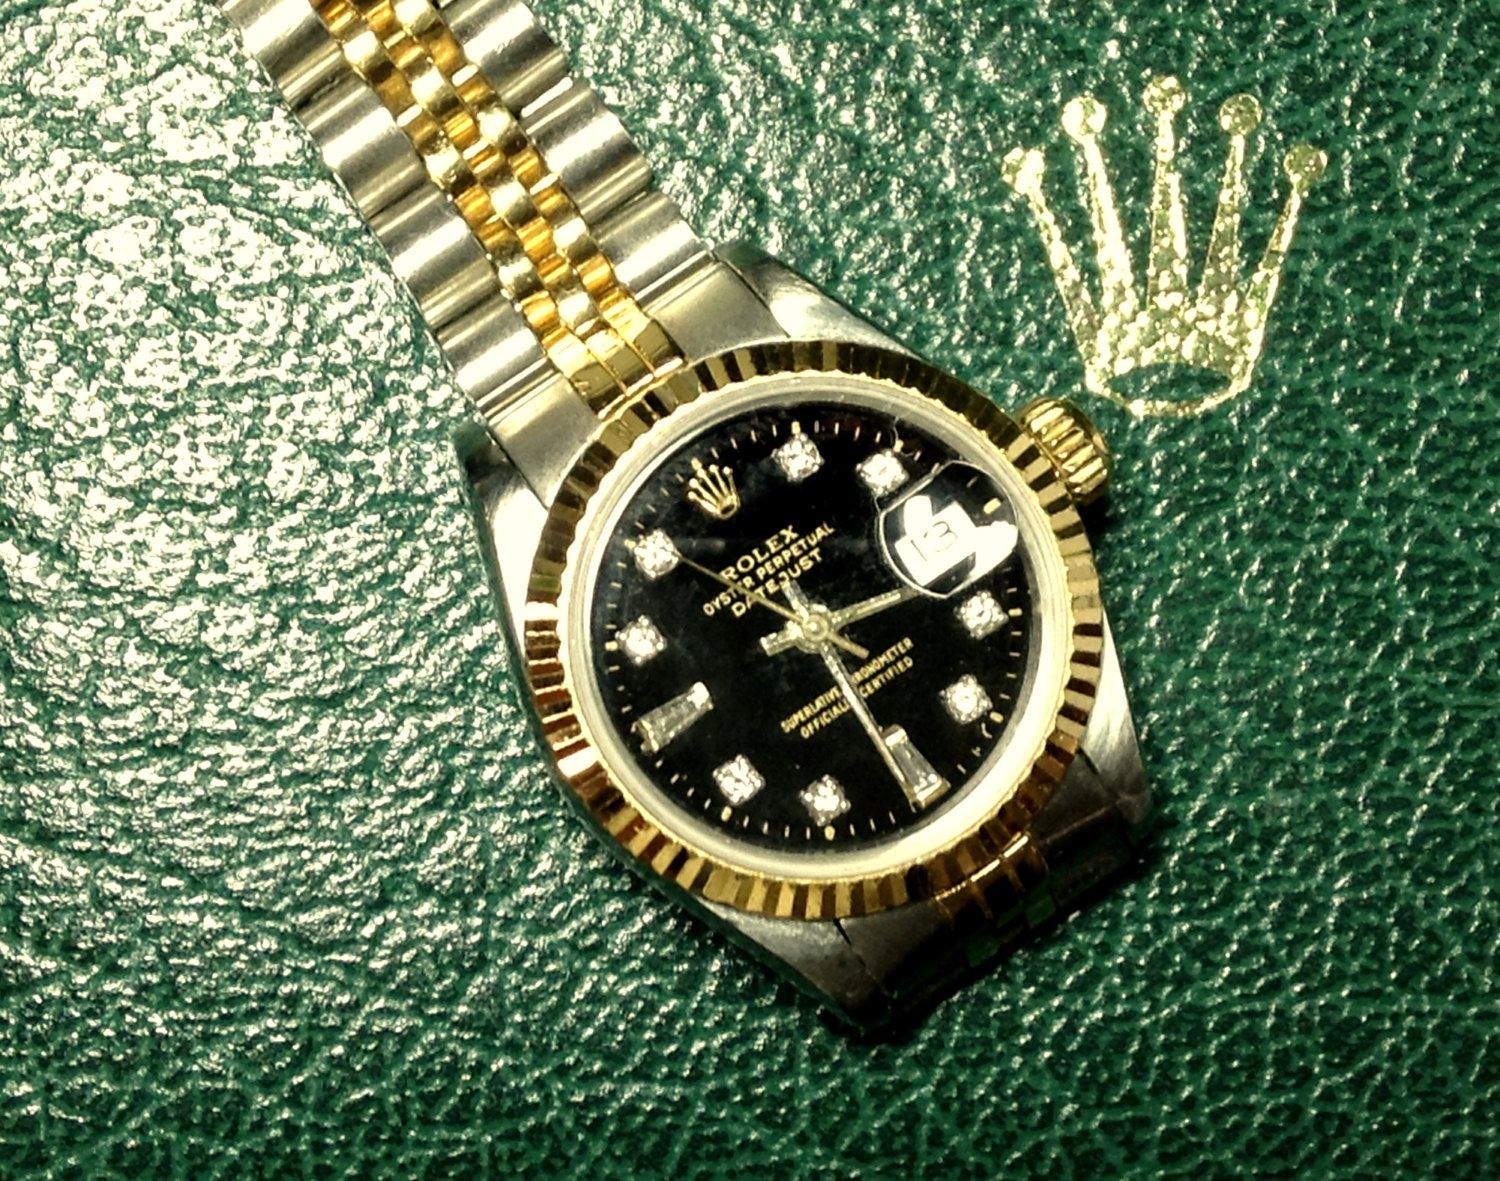 Women's Rolex Datejust Oyster Perpetual in Original Box FREE SHIPPING by BeadTrueToYourHeart on Etsy https://www.etsy.com/listing/209733574/womens-rolex-datejust-oyster-perpetual